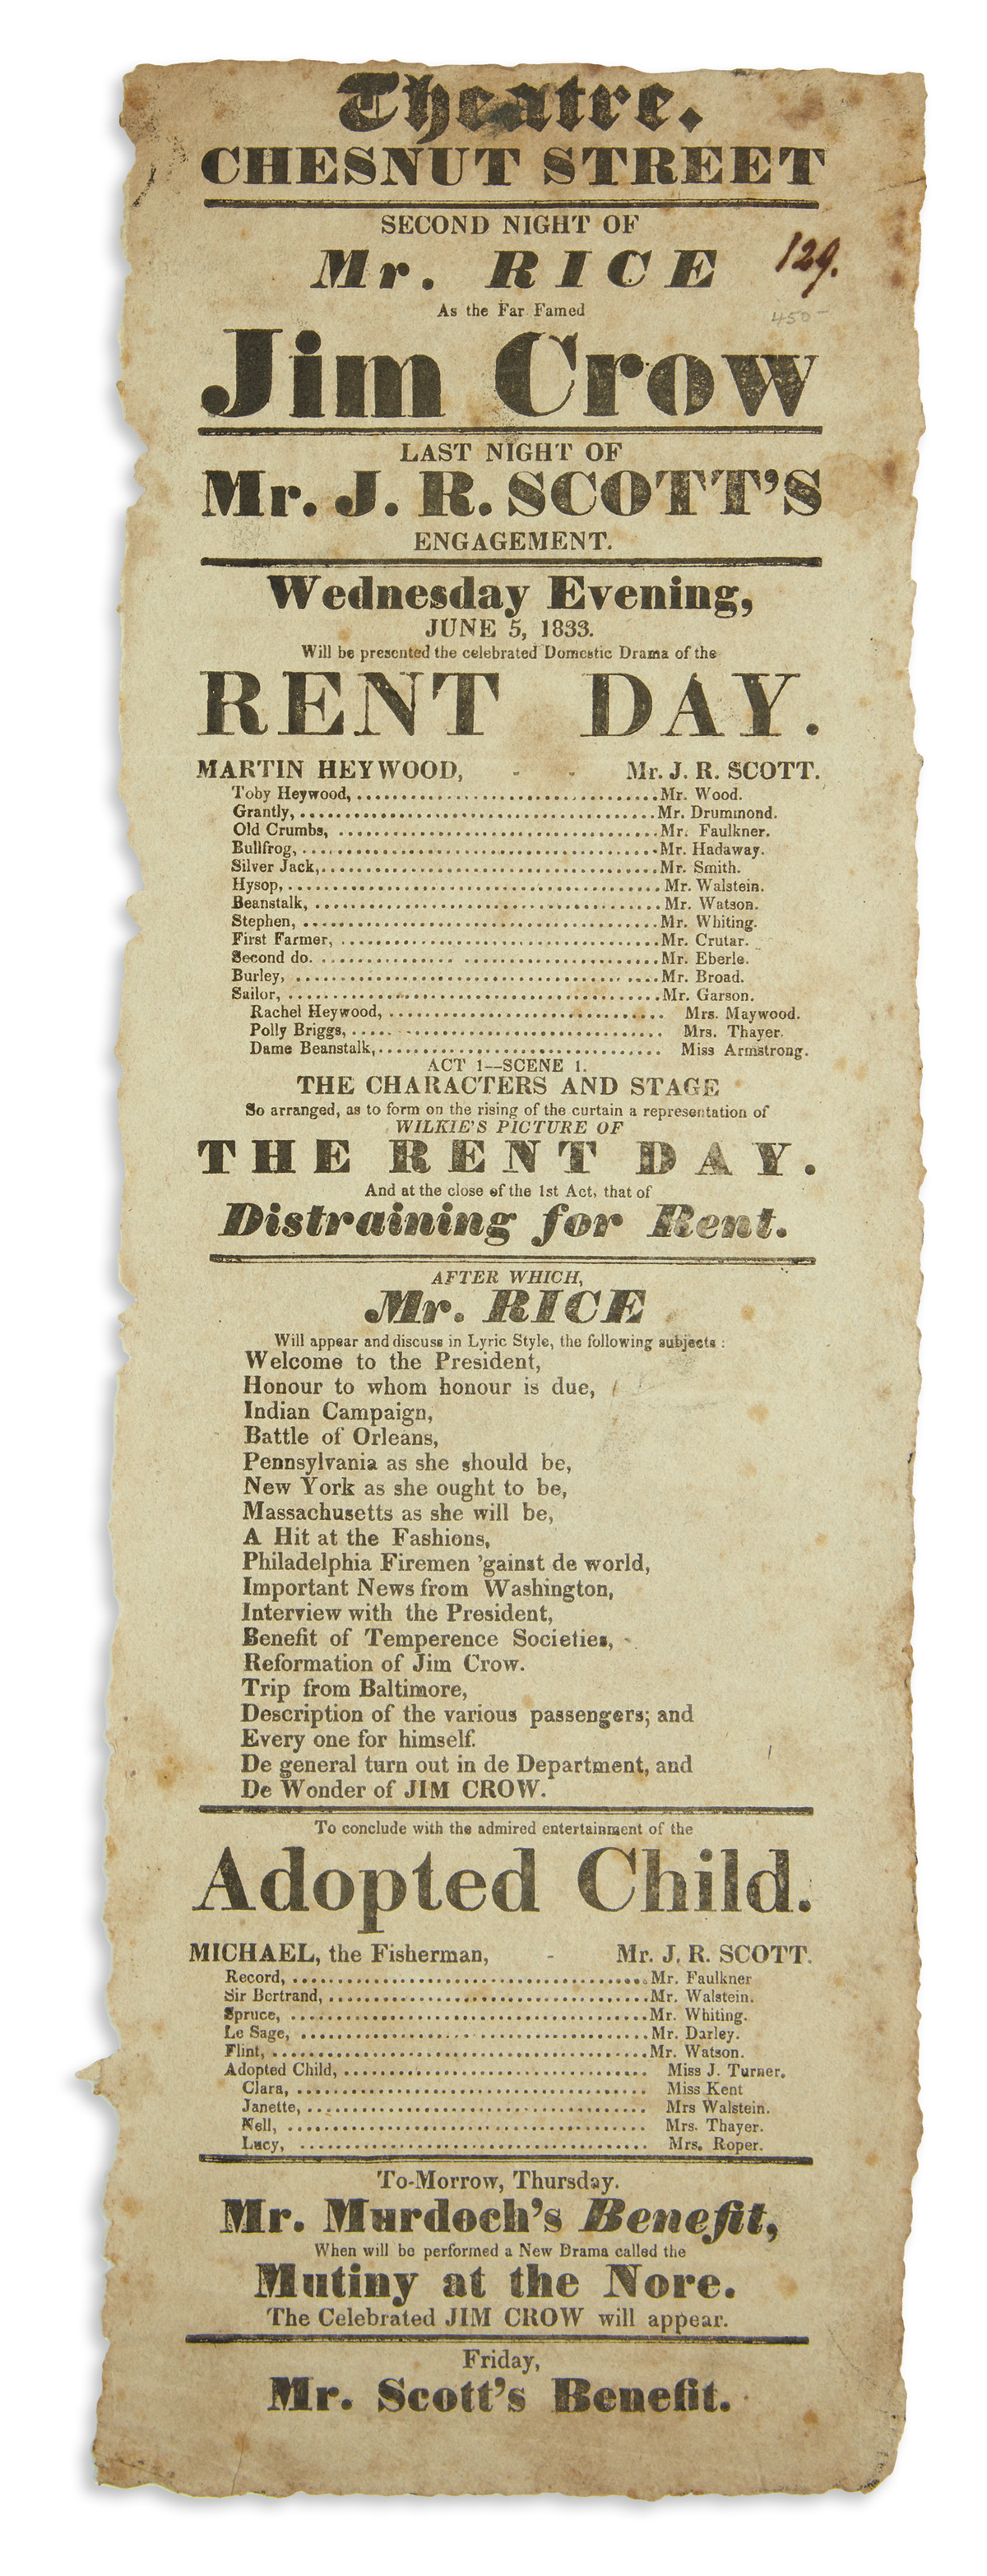 (THEATER.) Chestnut Street Theatre playbill for Mr. Rice as the far-famed Jim Crow.